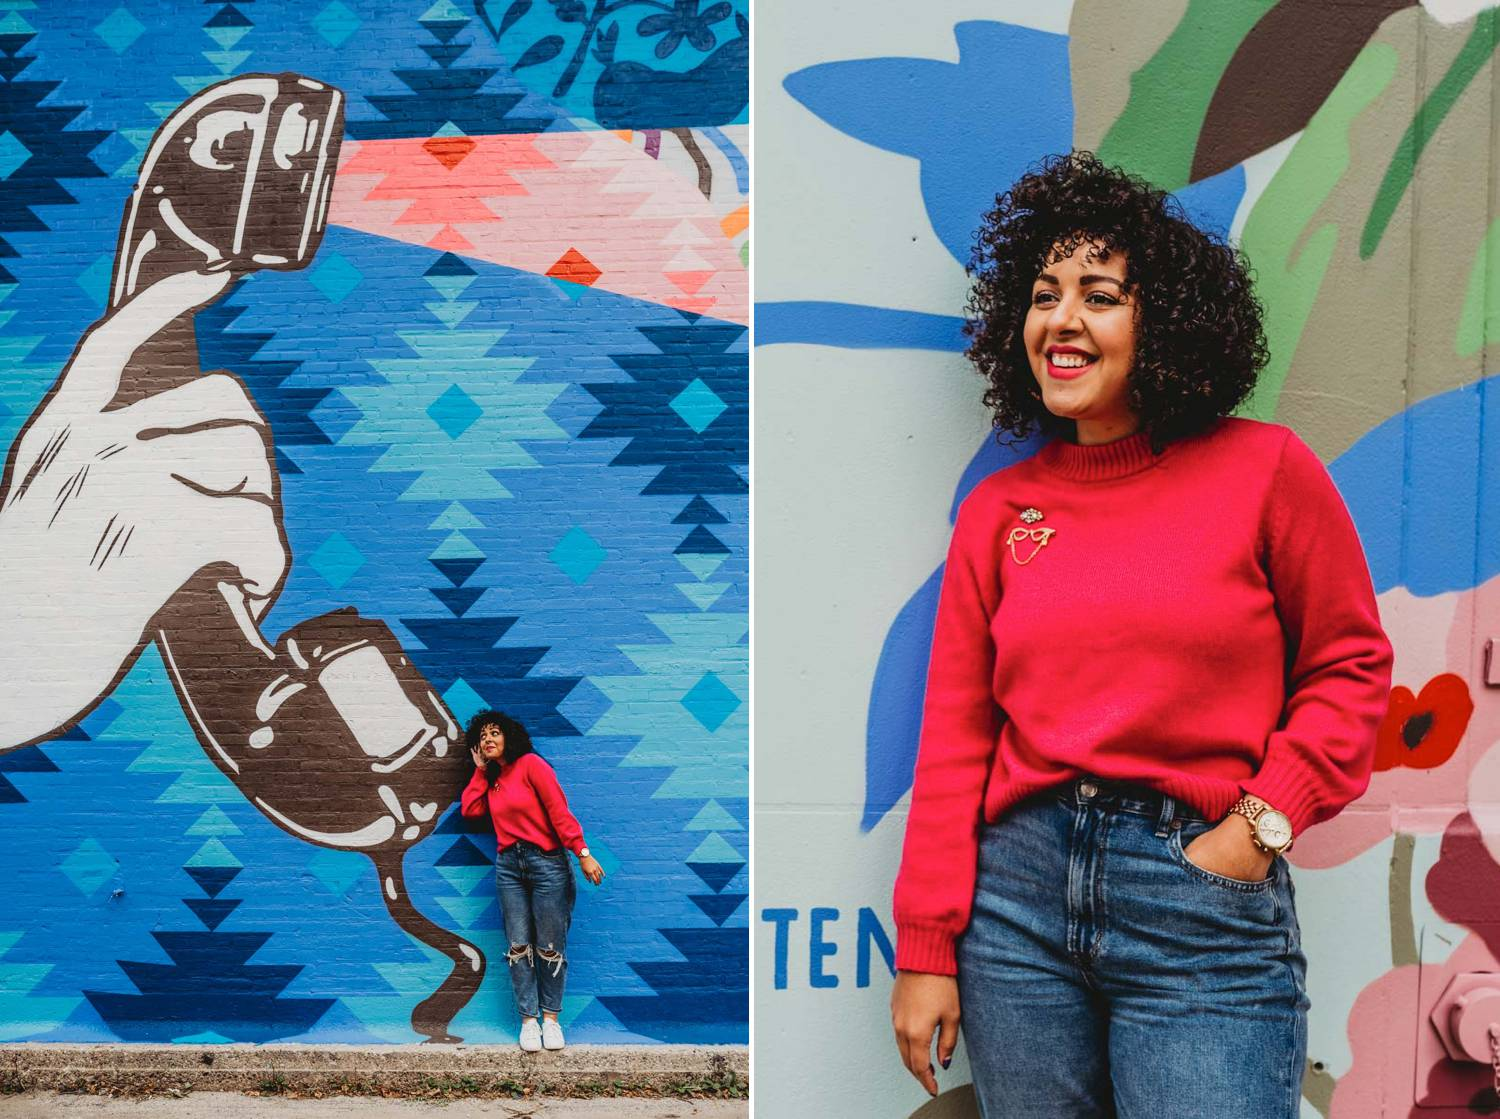 A small business owner wearing jeans and a pink sweater stands in front of a graffiti wall in downtown Atlanta